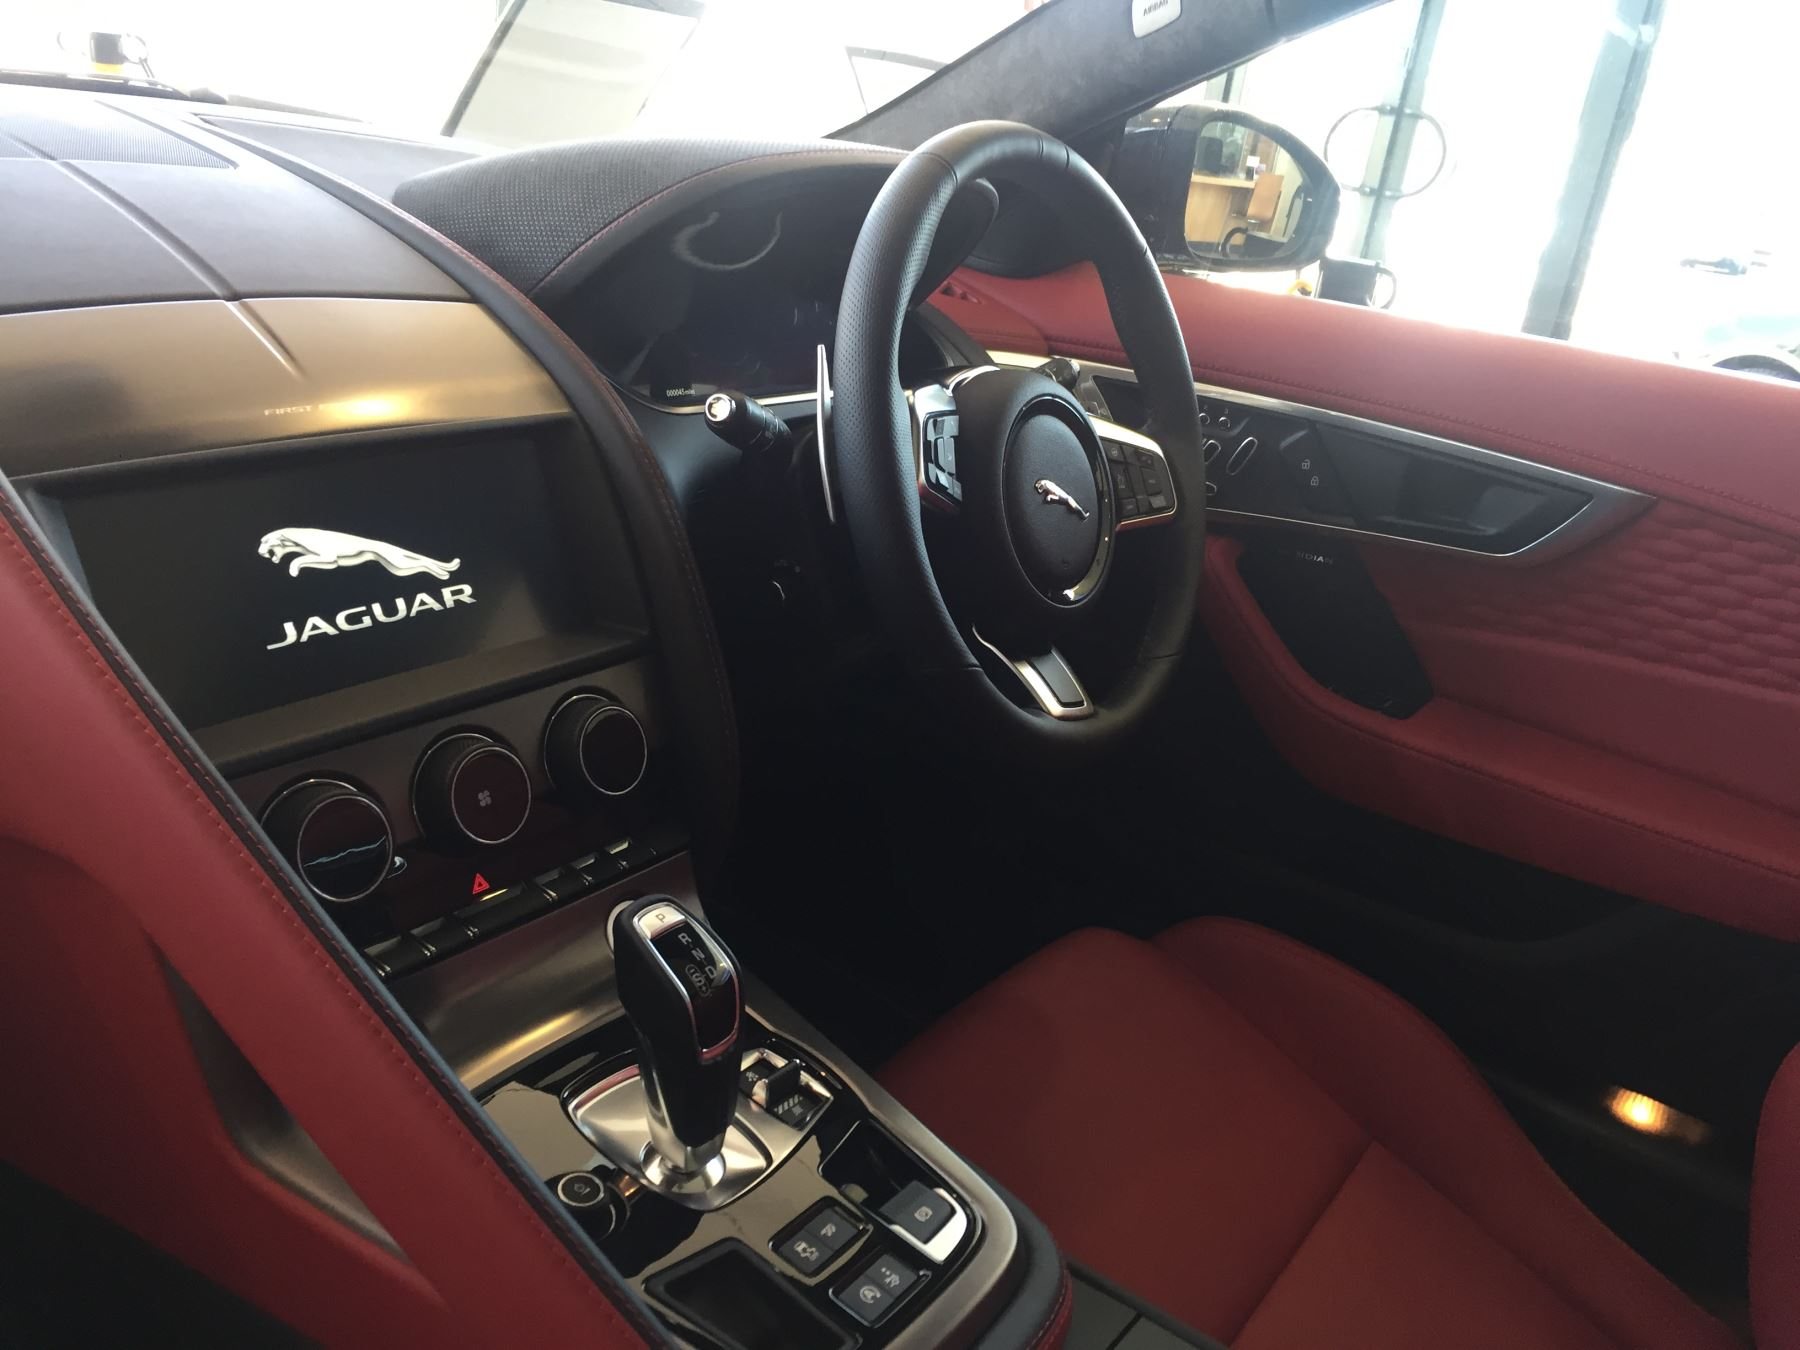 Jaguar F-TYPE 5.0 P450 Supercharged V8 First Edition SPECIAL EDITIONS image 10